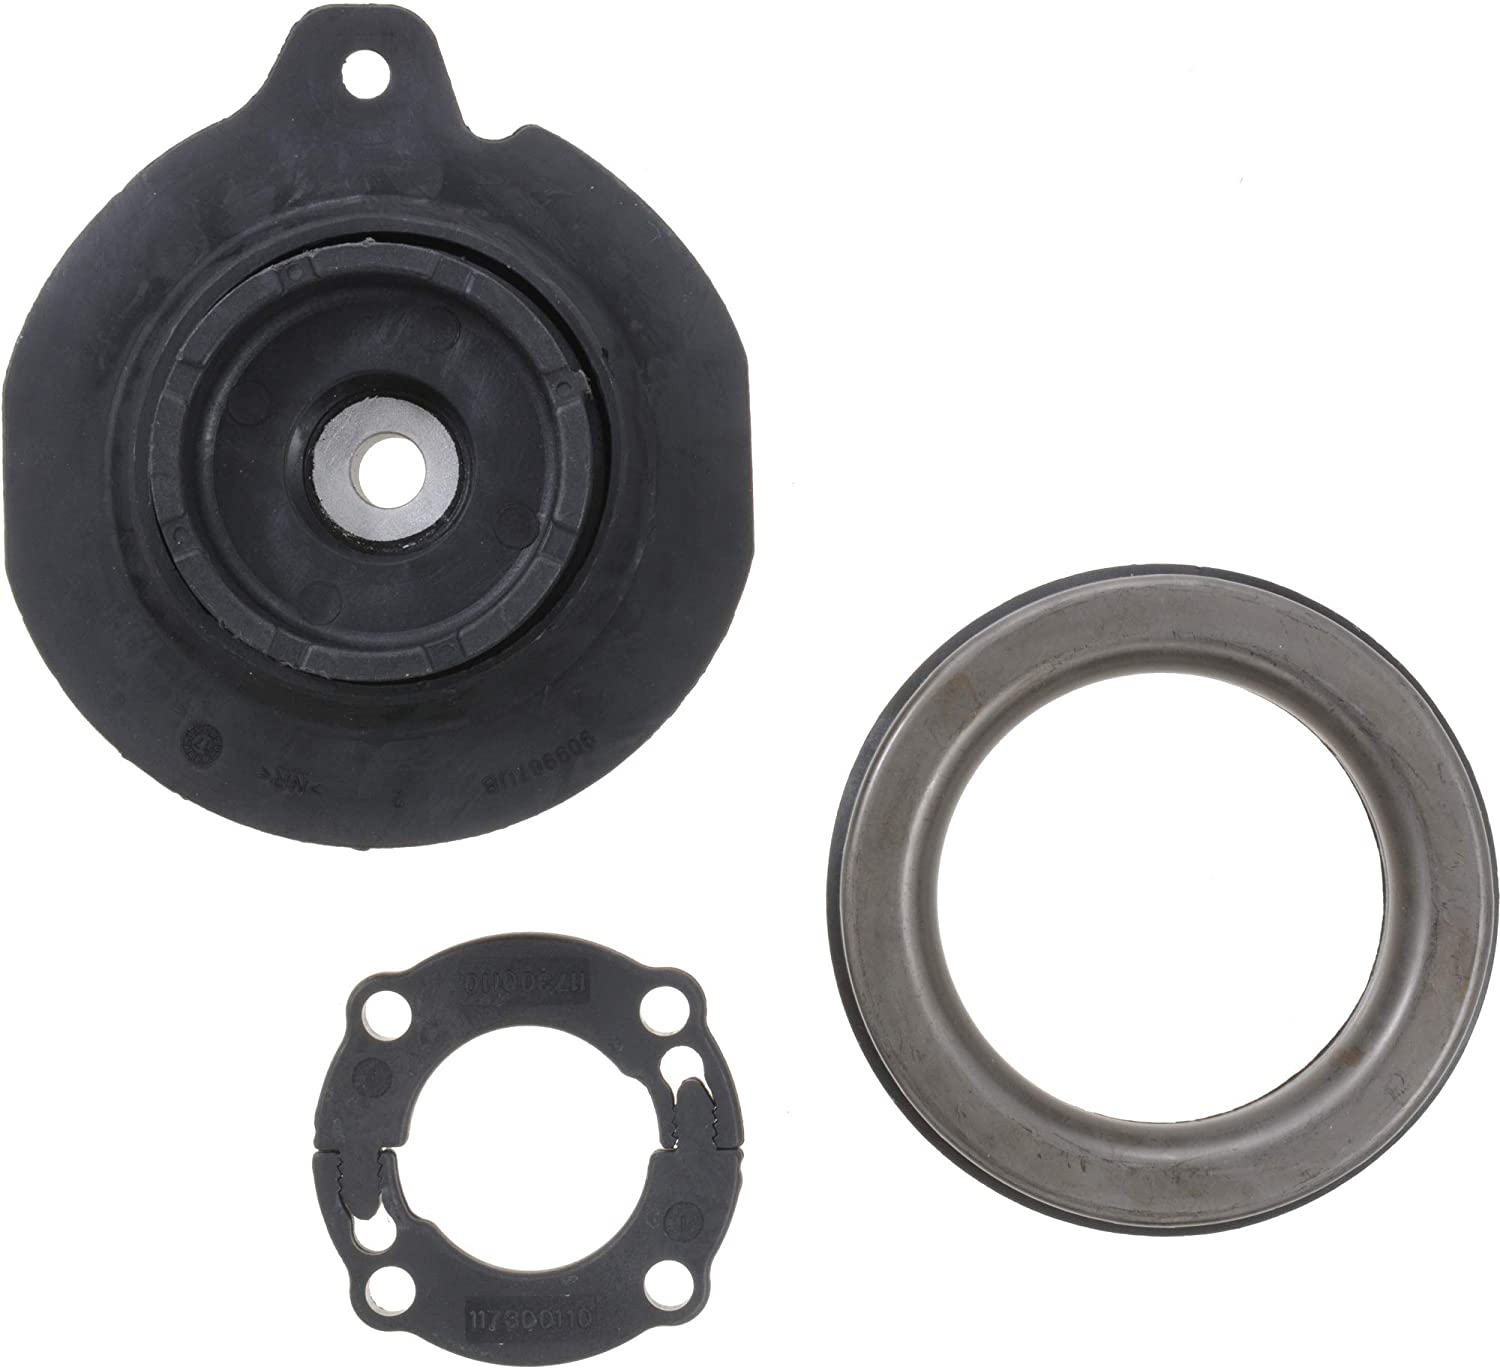 Strut-Mate Strut Mounting Kit